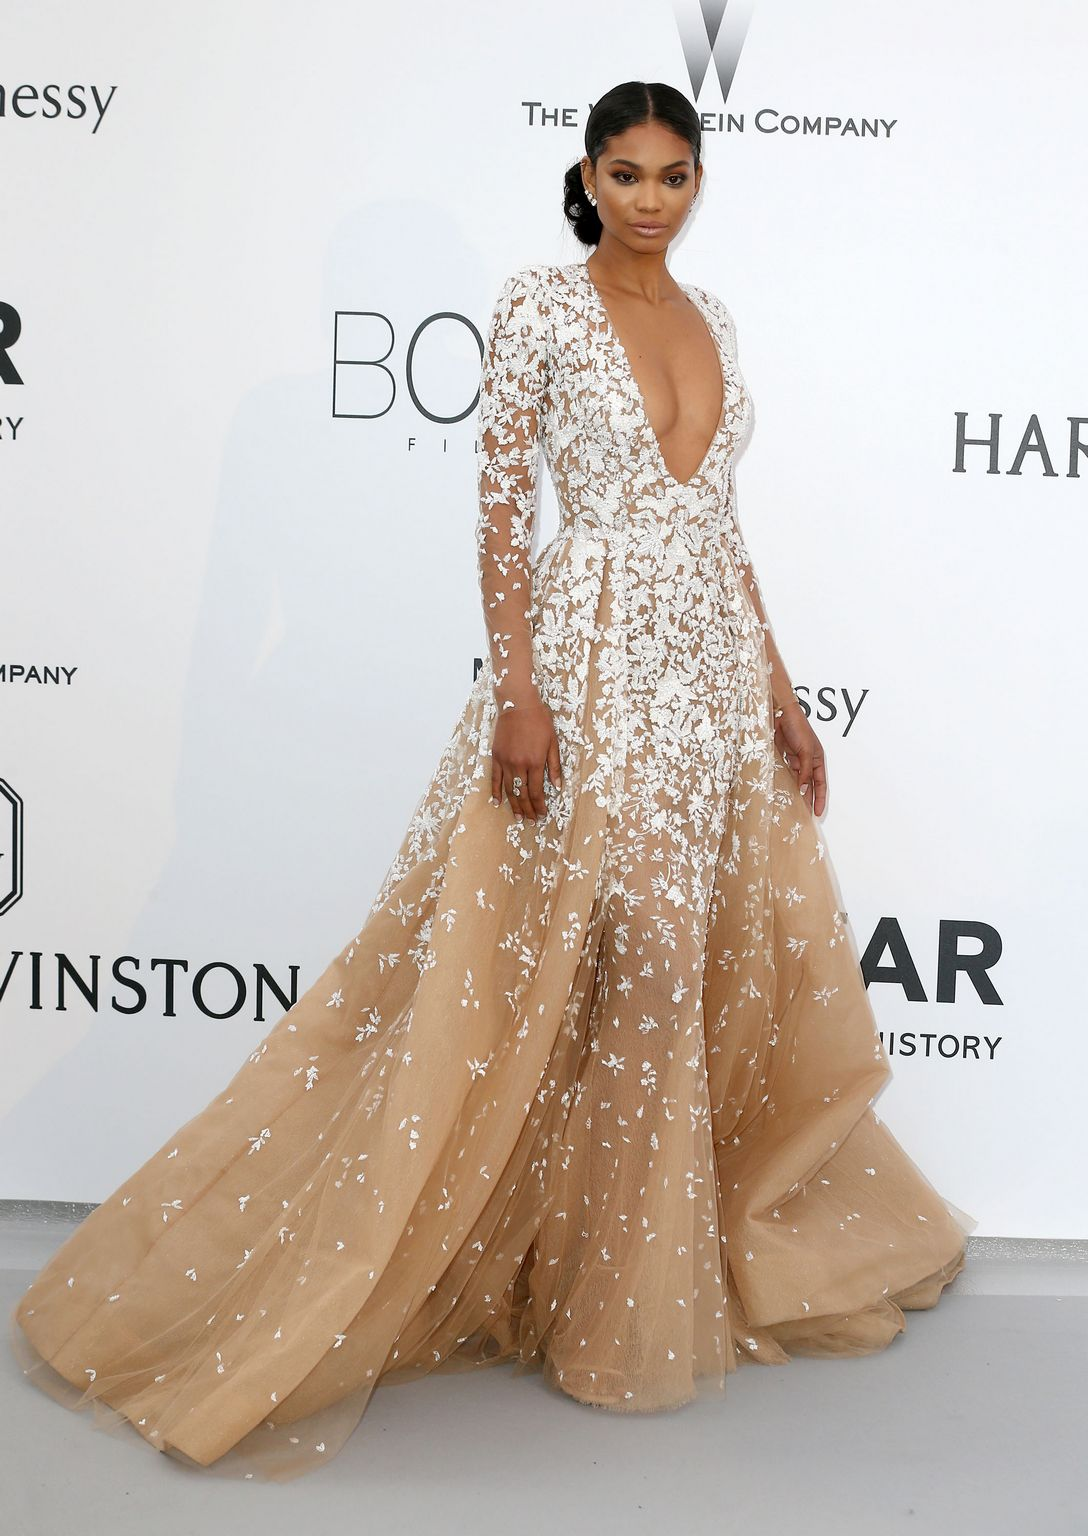 Chanel Iman at amfARs Cinema Against AIDS Gala-1